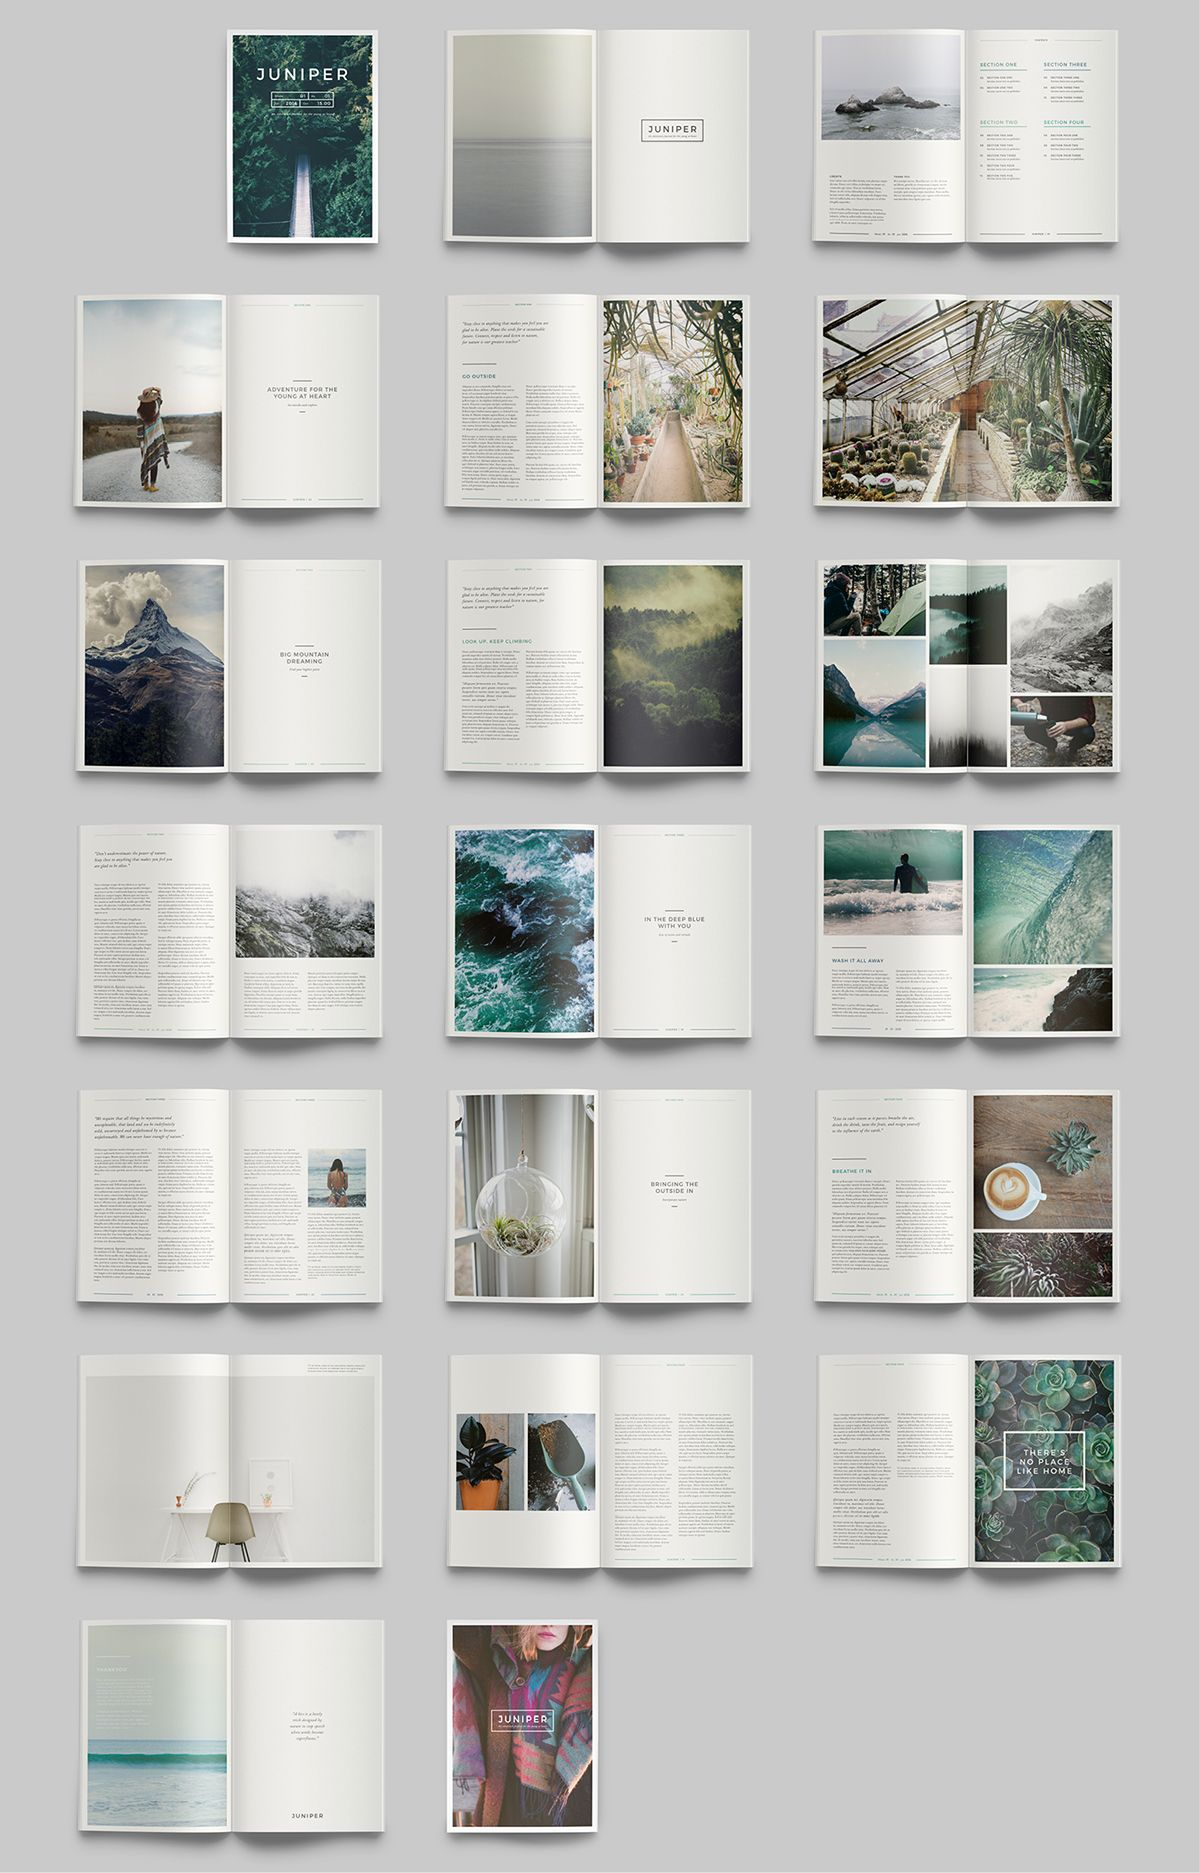 Art of photography book pdf